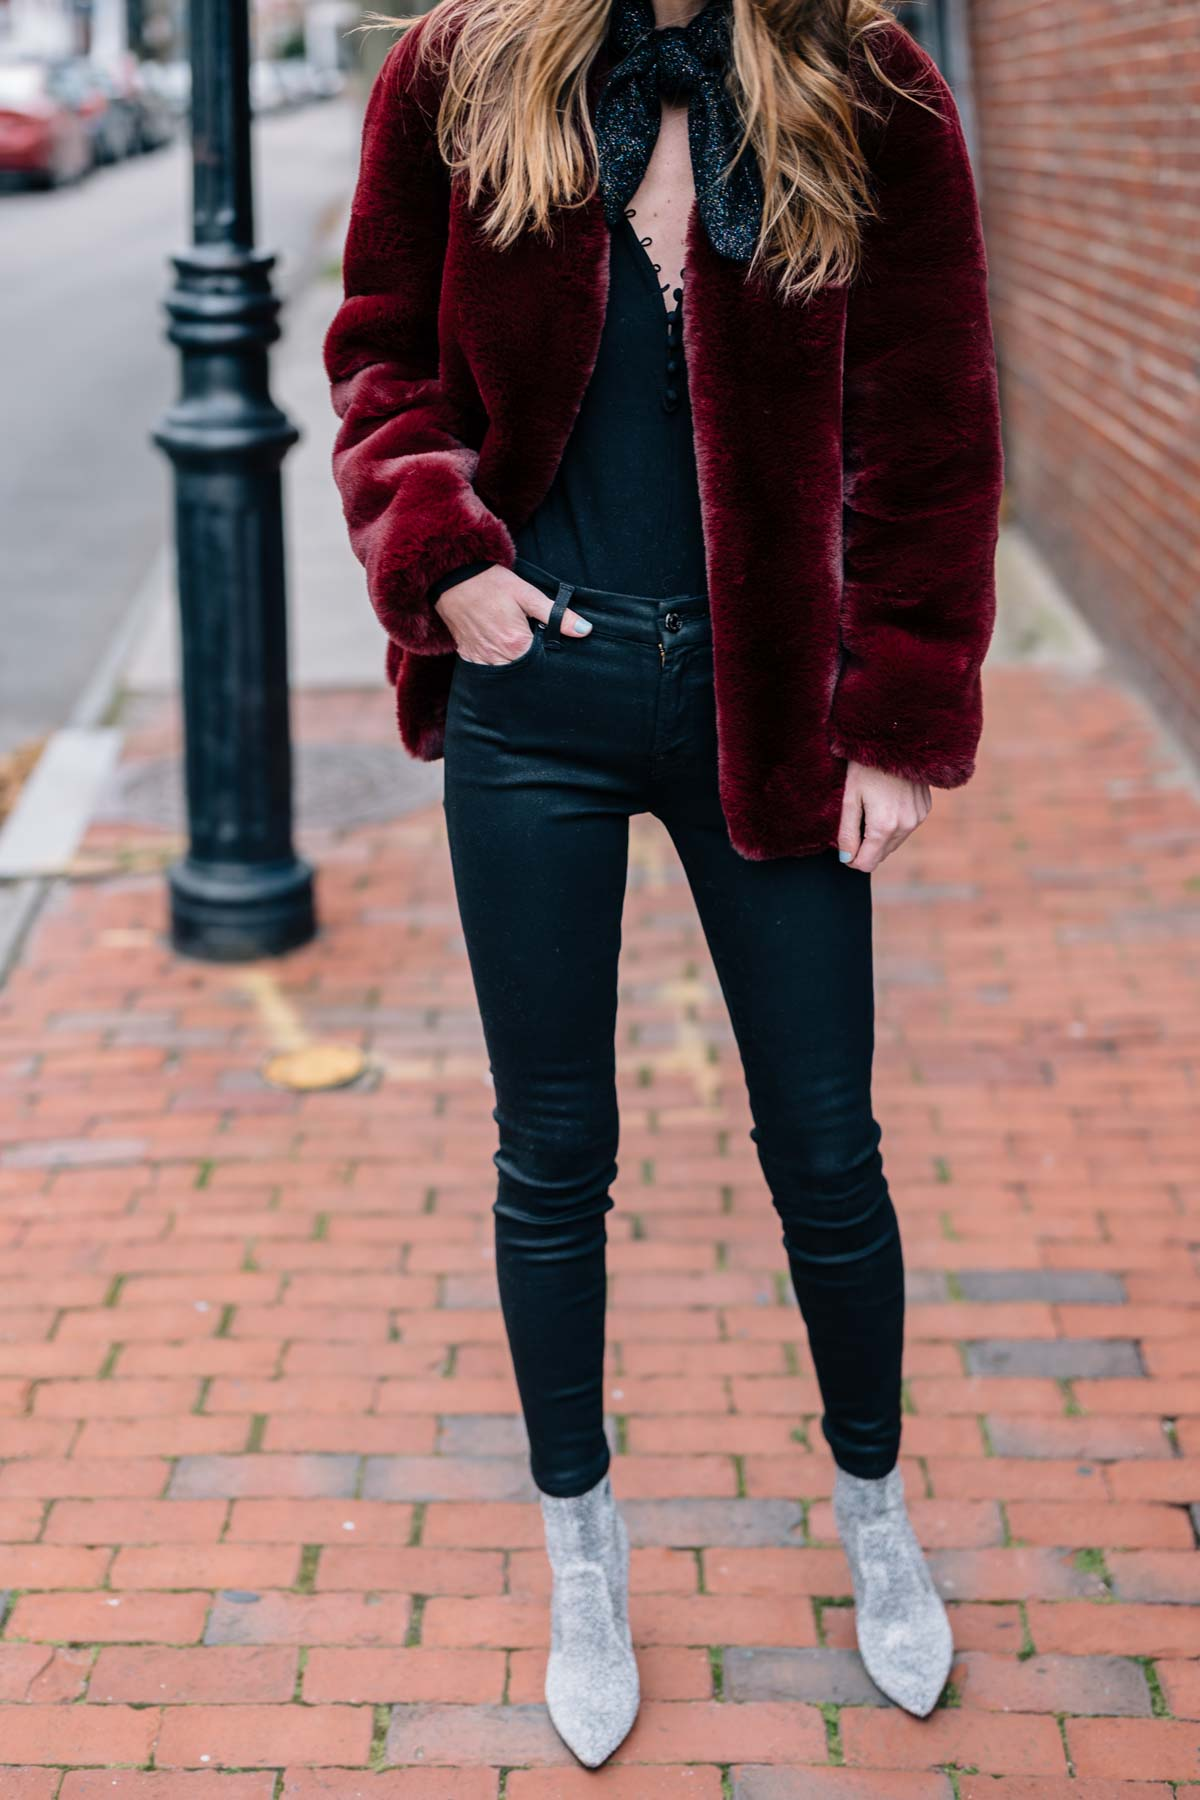 Jess Ann Kirby shares her holiday style this season in a burgundy Moon River faux fur jacket and sparkle cashmere scarf